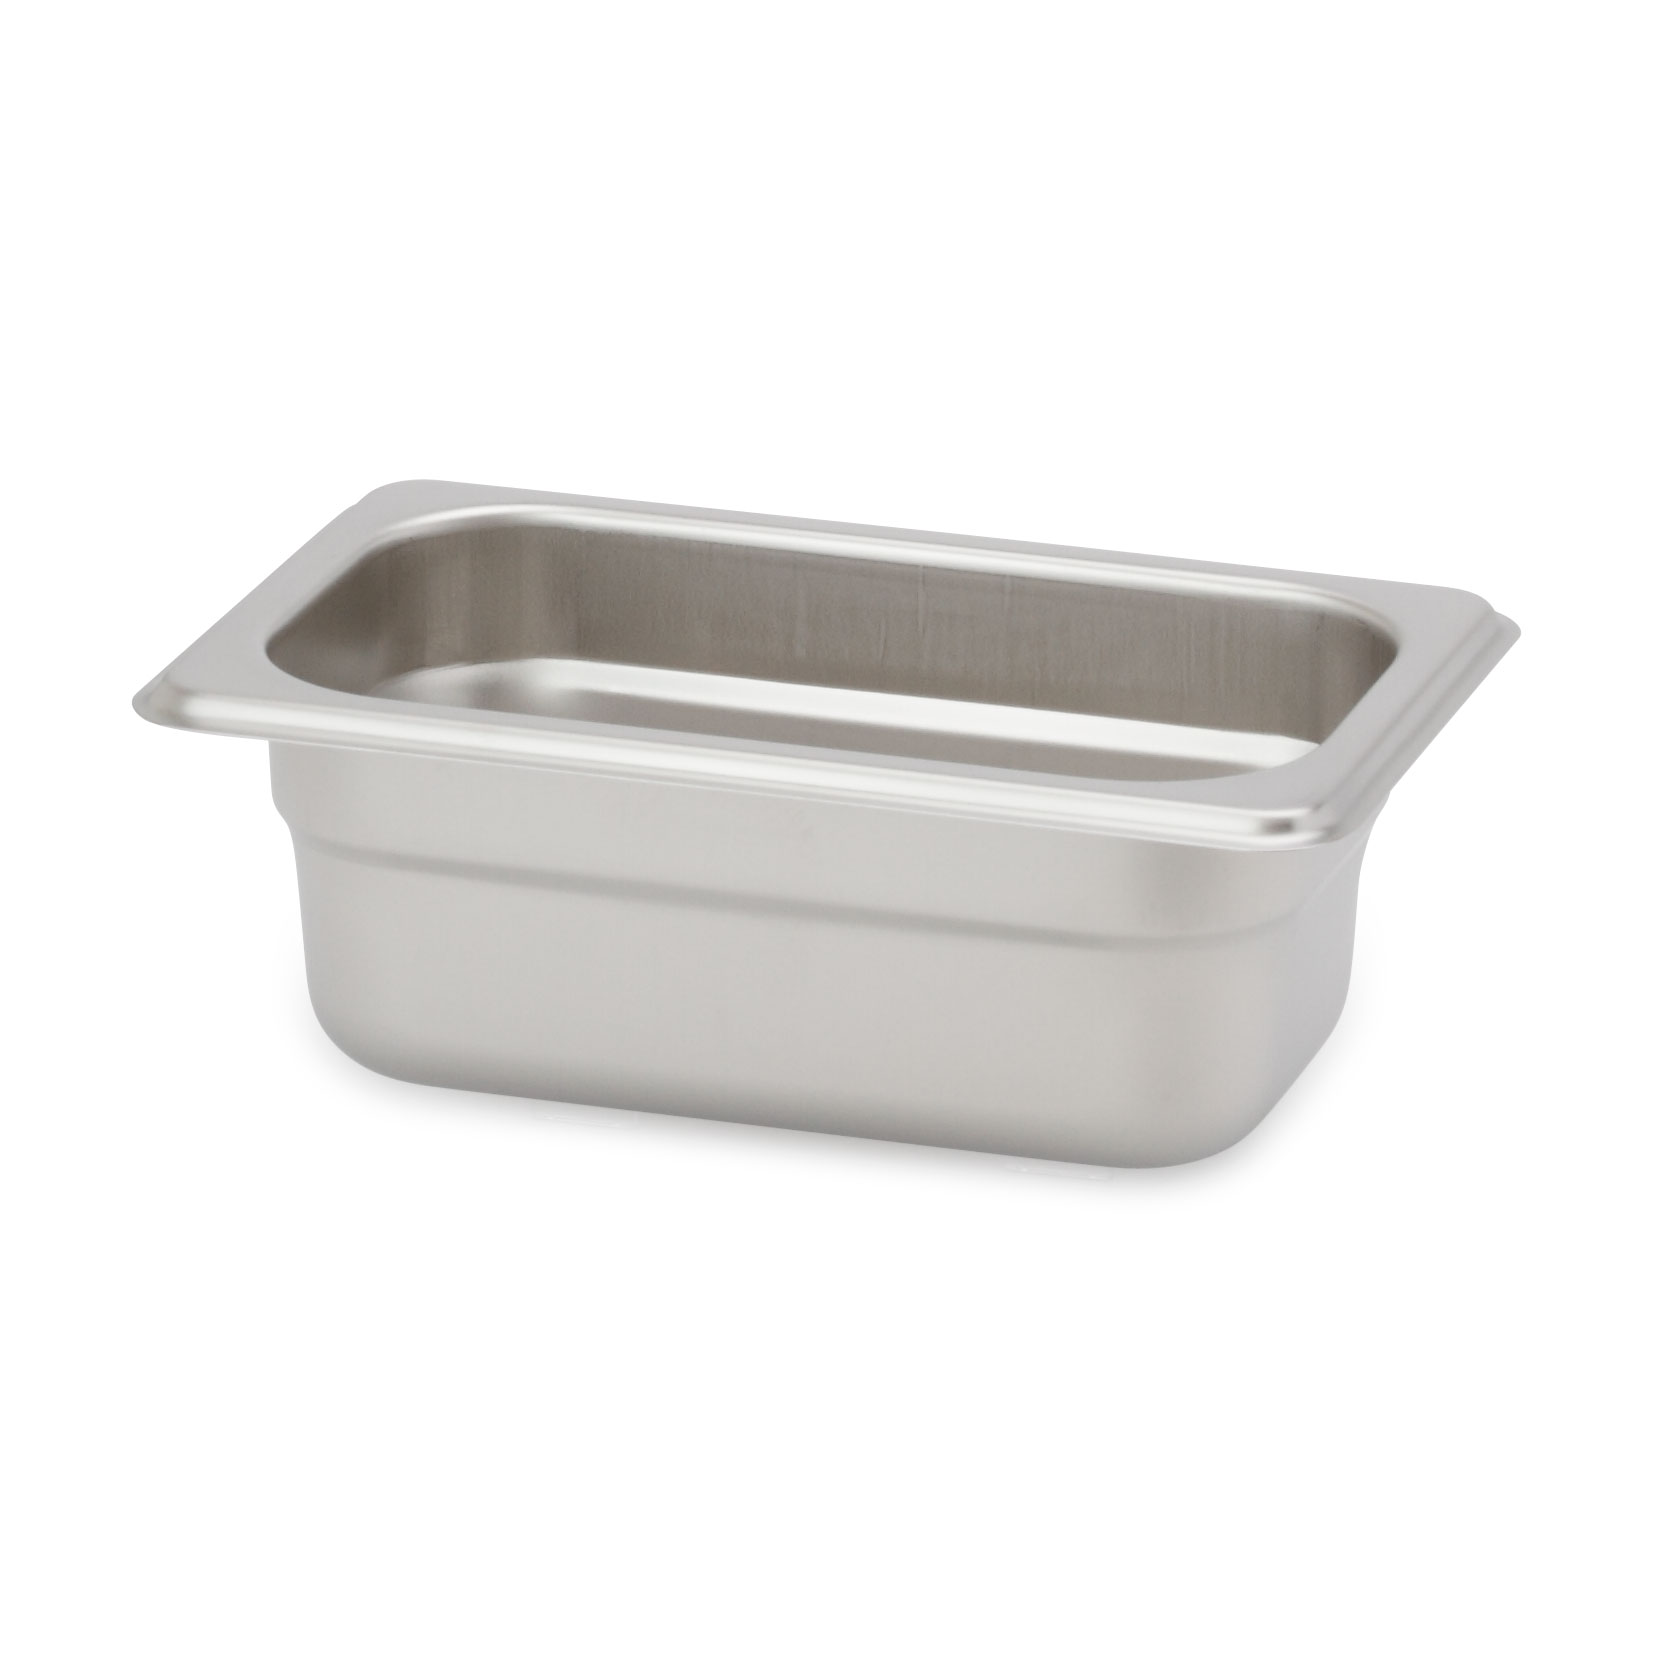 Royal Industries ROY STP 1902 steam table pan, stainless steel